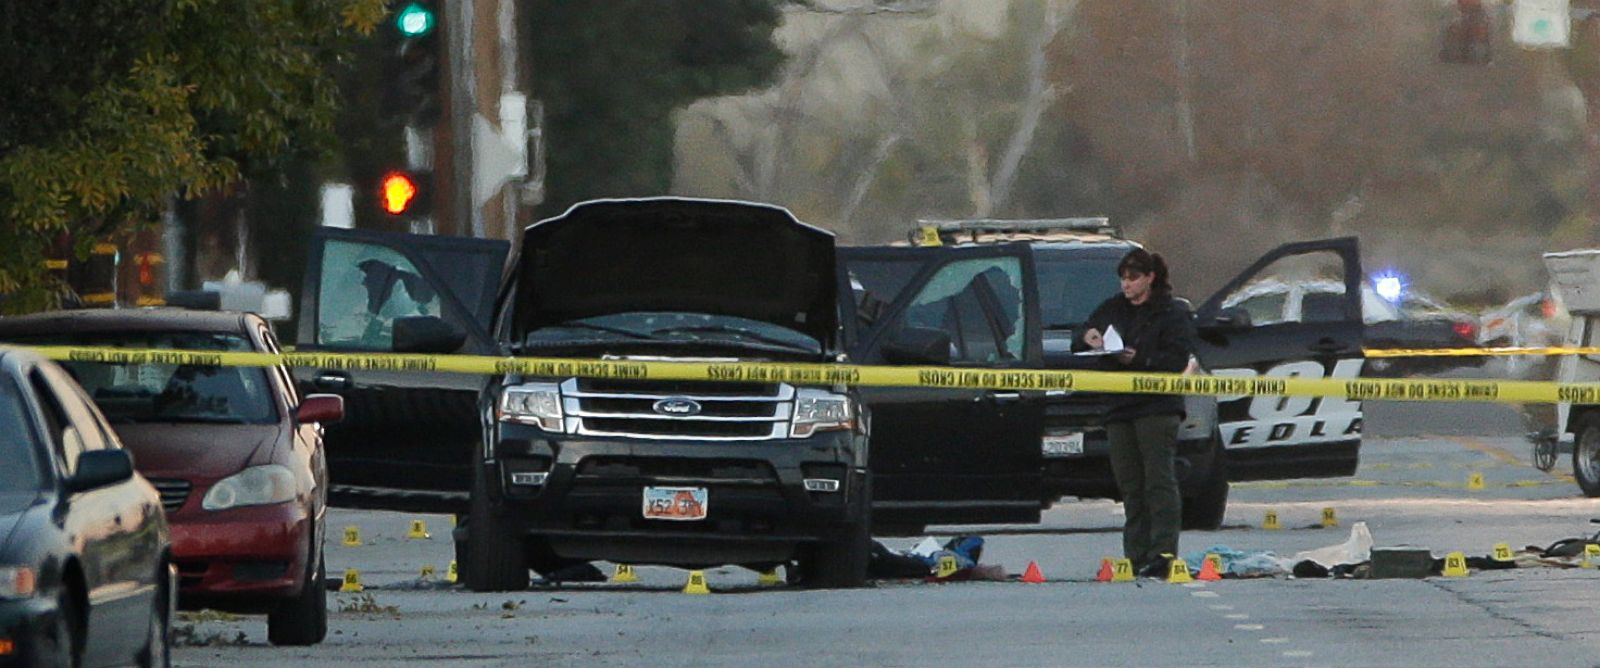 PHOTO: An investigator looks at a Black SUV that was involved in a police shootout with suspects, Dec. 3, 2015, in San Bernardino, Calif.